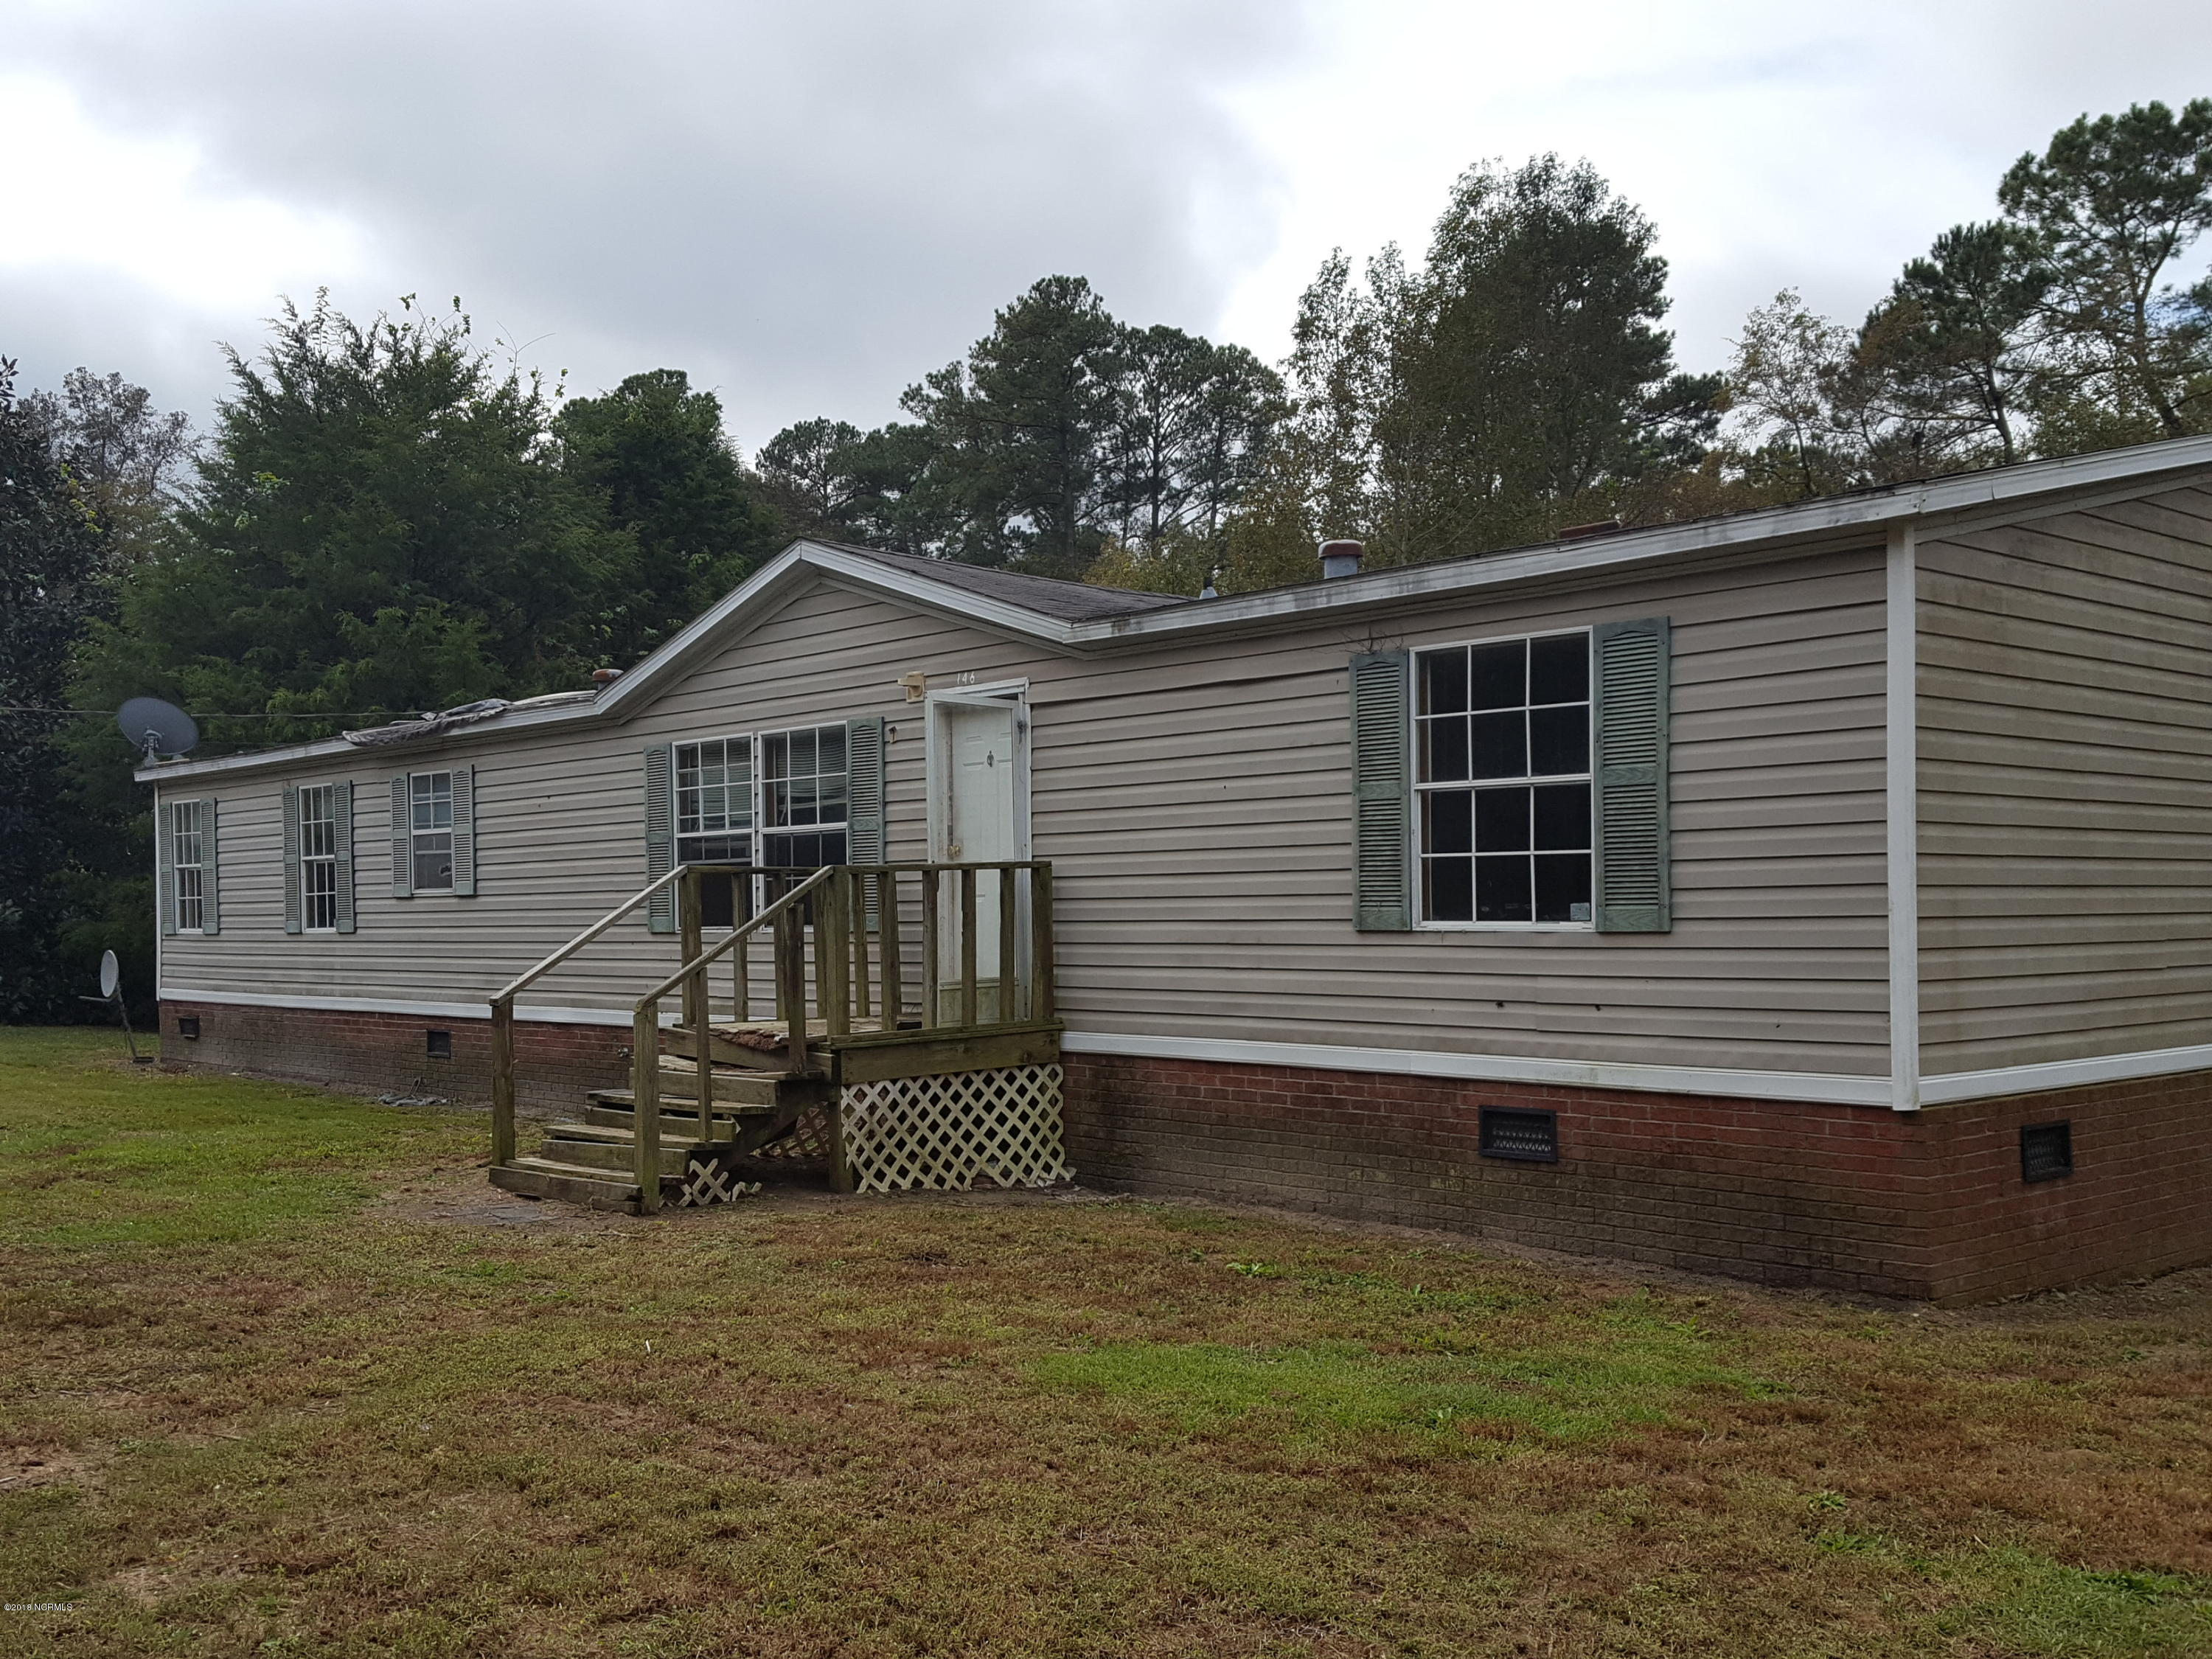 146 Canary Lane, Pikeville, North Carolina, 3 Bedrooms Bedrooms, 8 Rooms Rooms,2 BathroomsBathrooms,Manufactured home,For sale,Canary,100142146